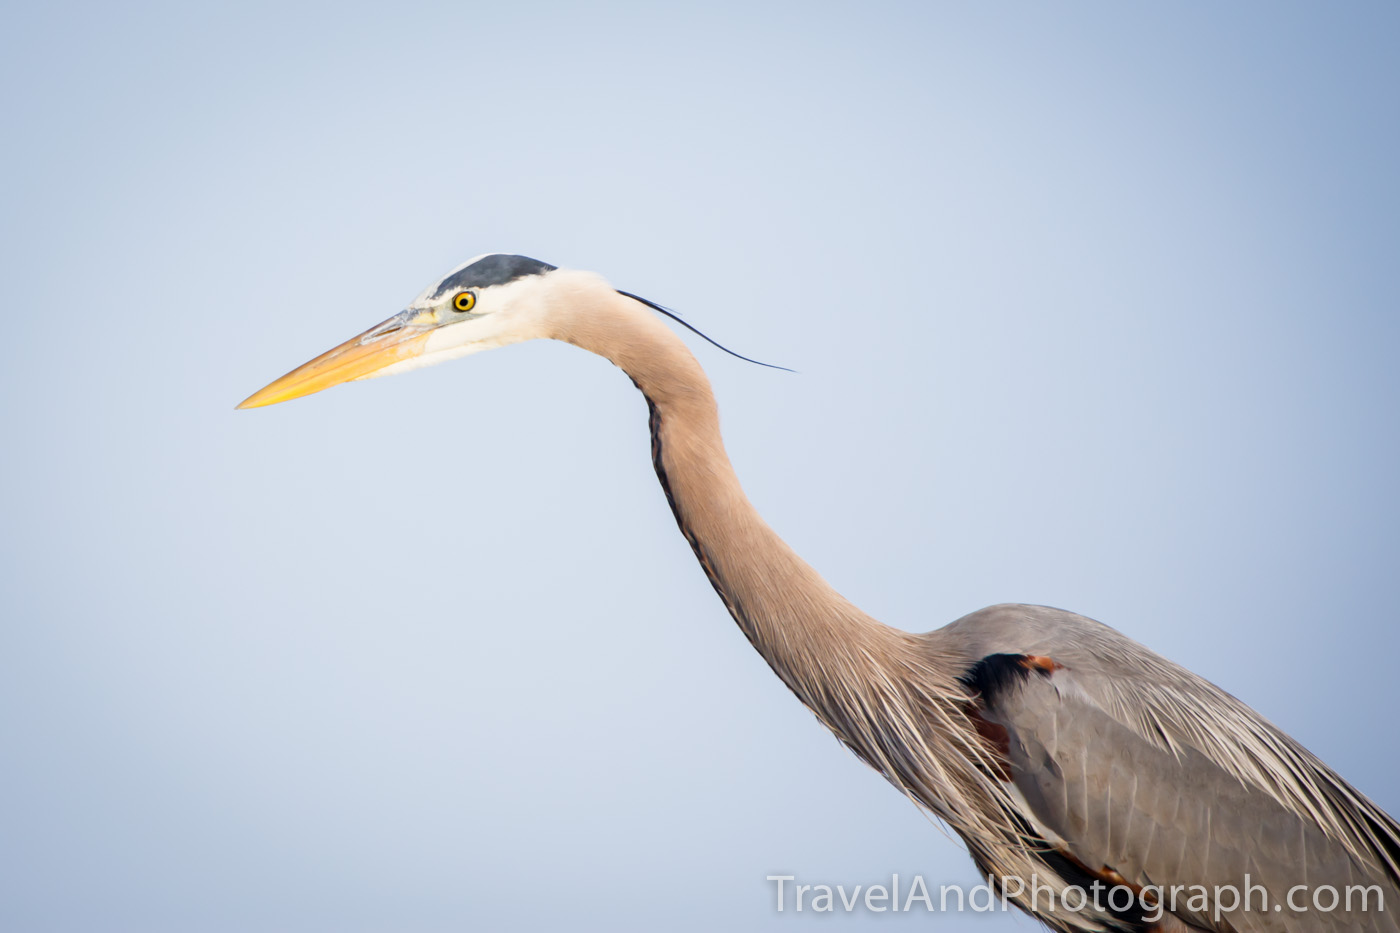 Blue Heron checking things out